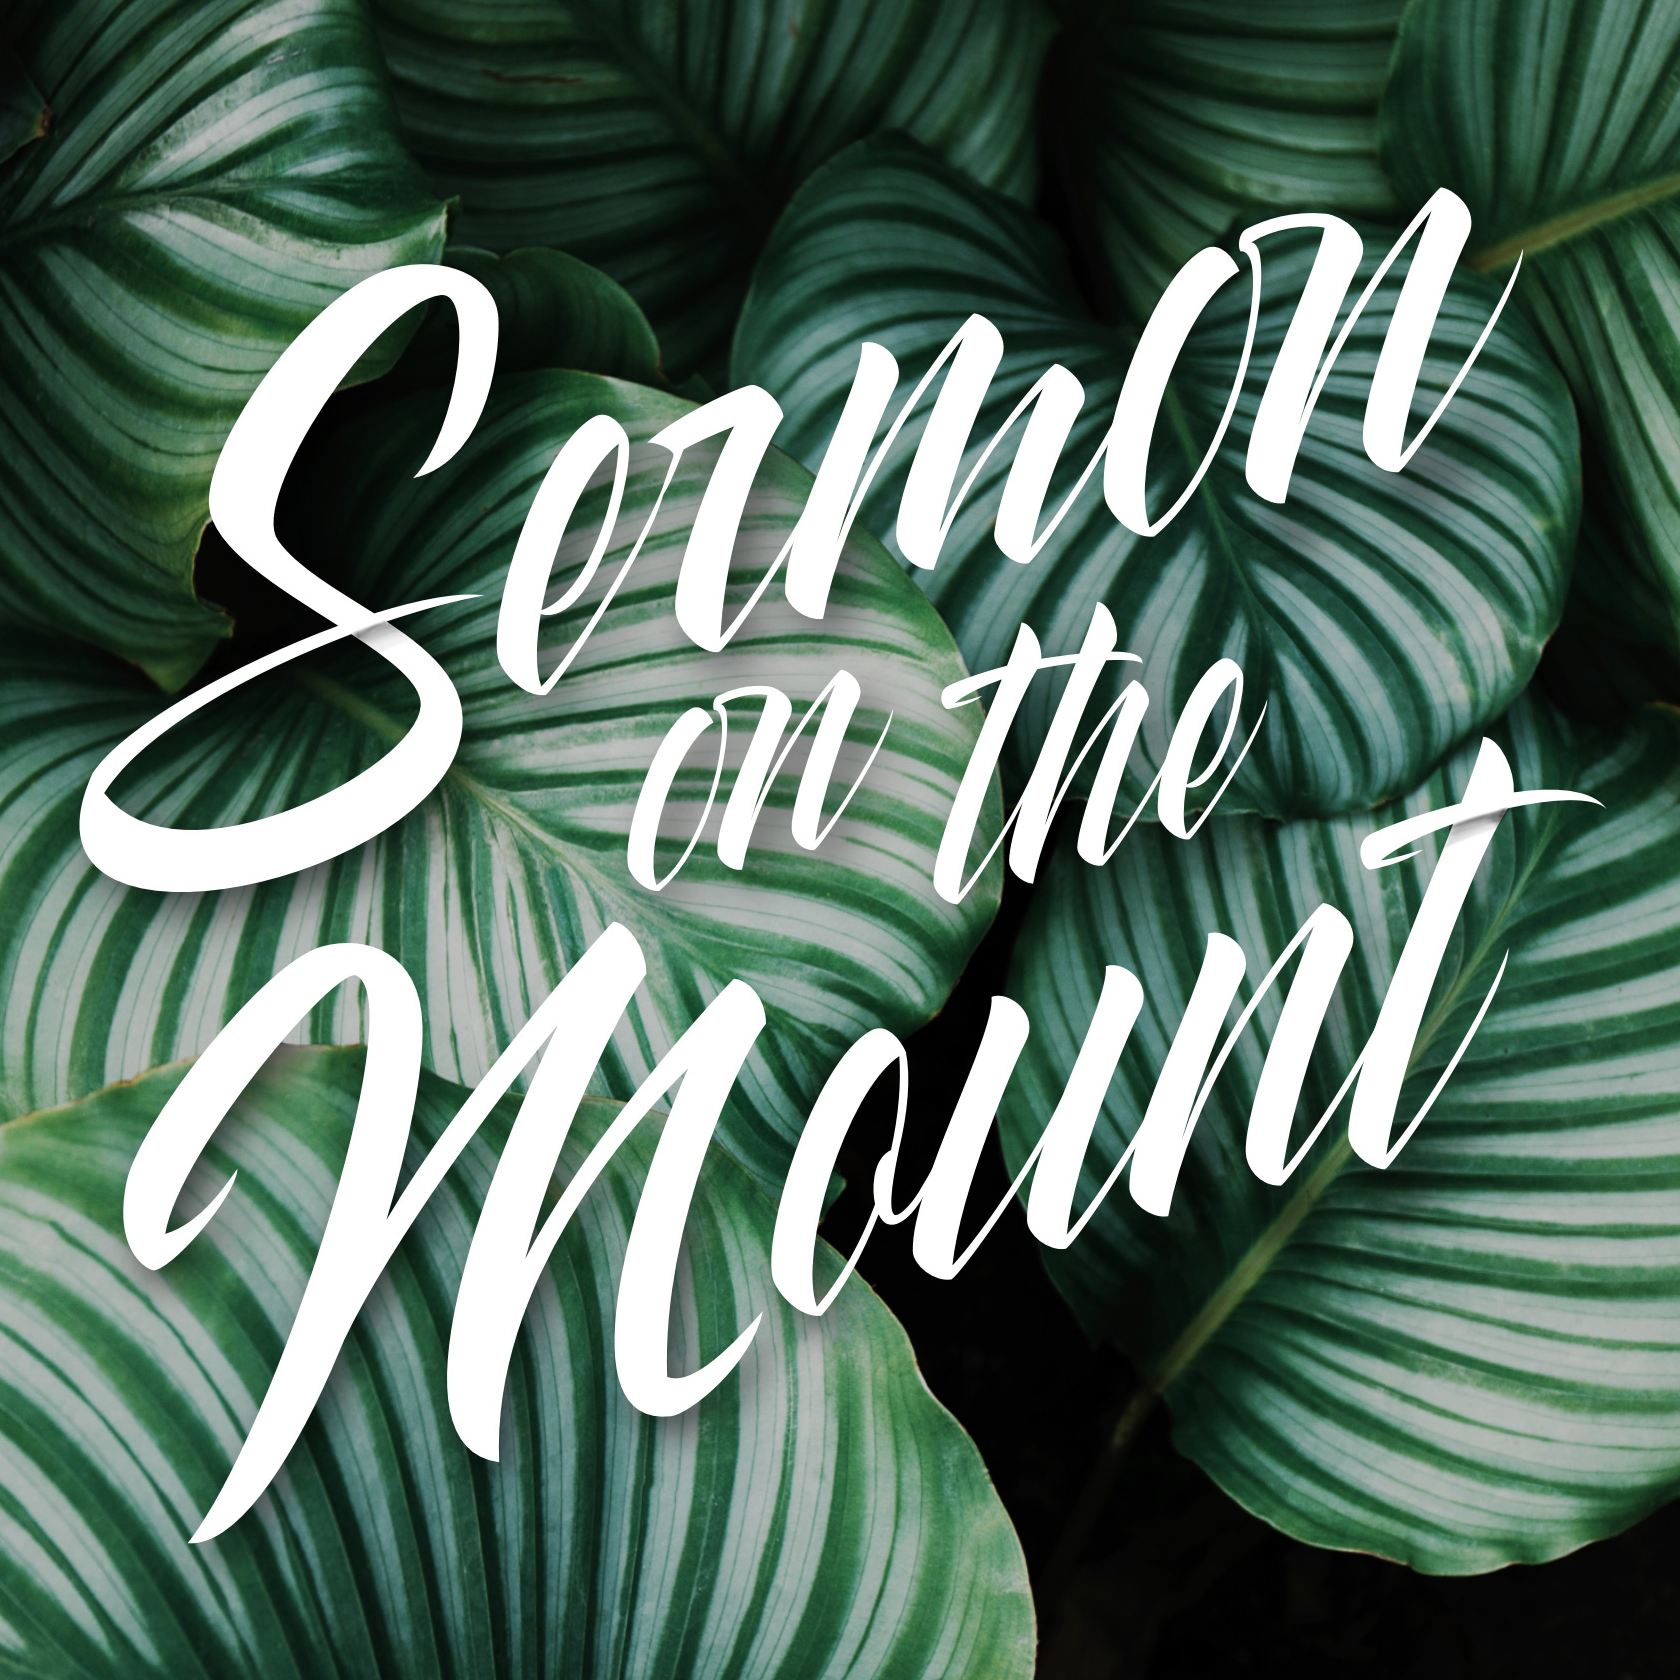 Sermon on the Mount Audio